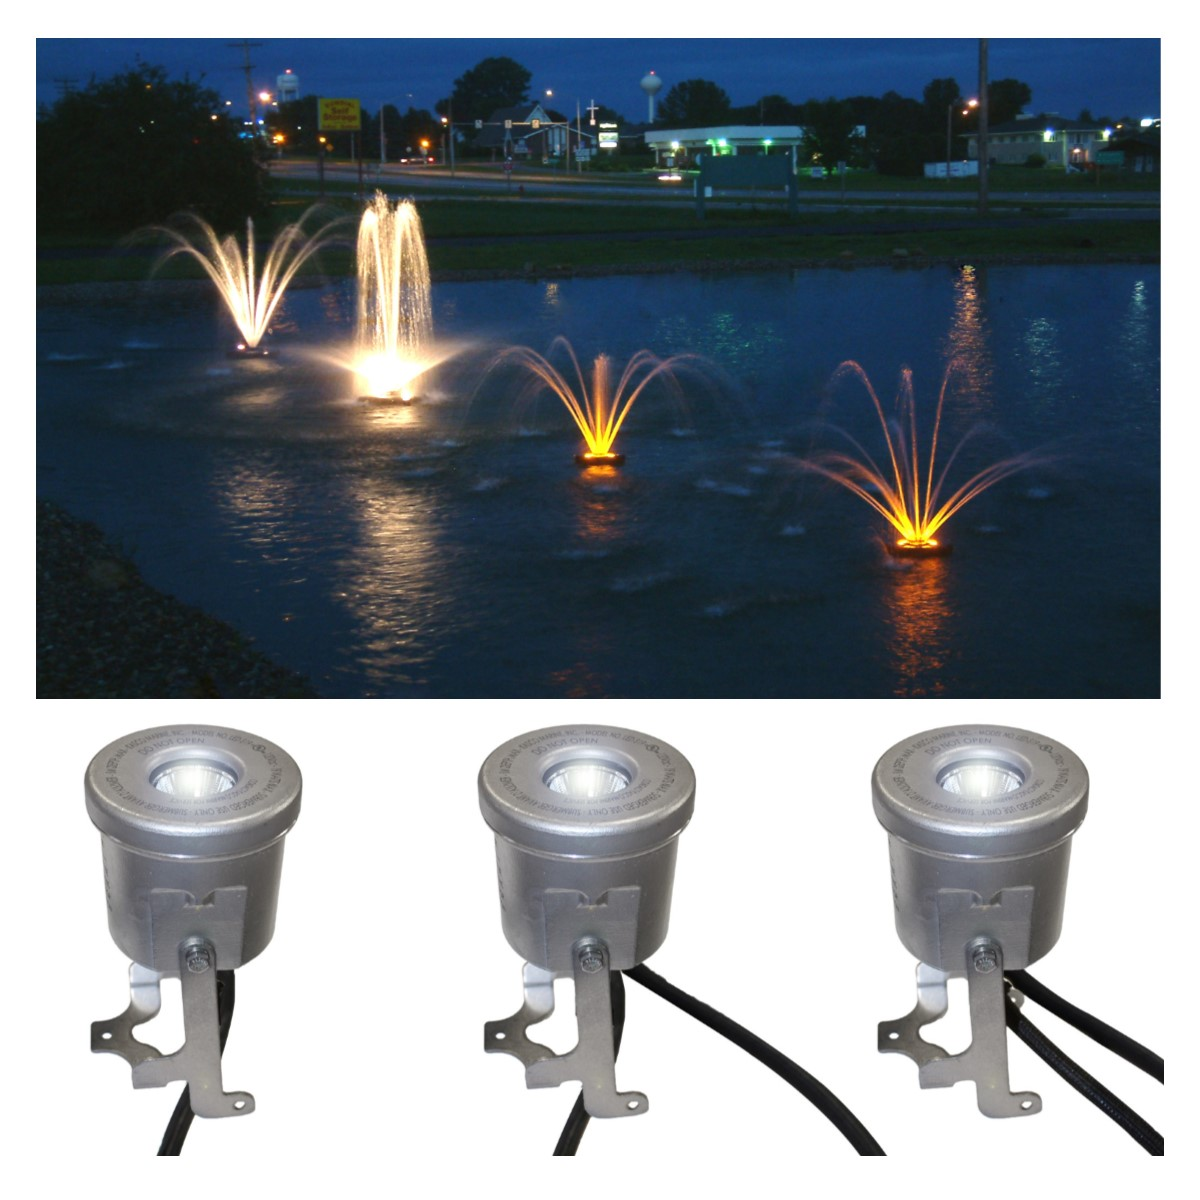 Kasco LED Stainless Steel Lights